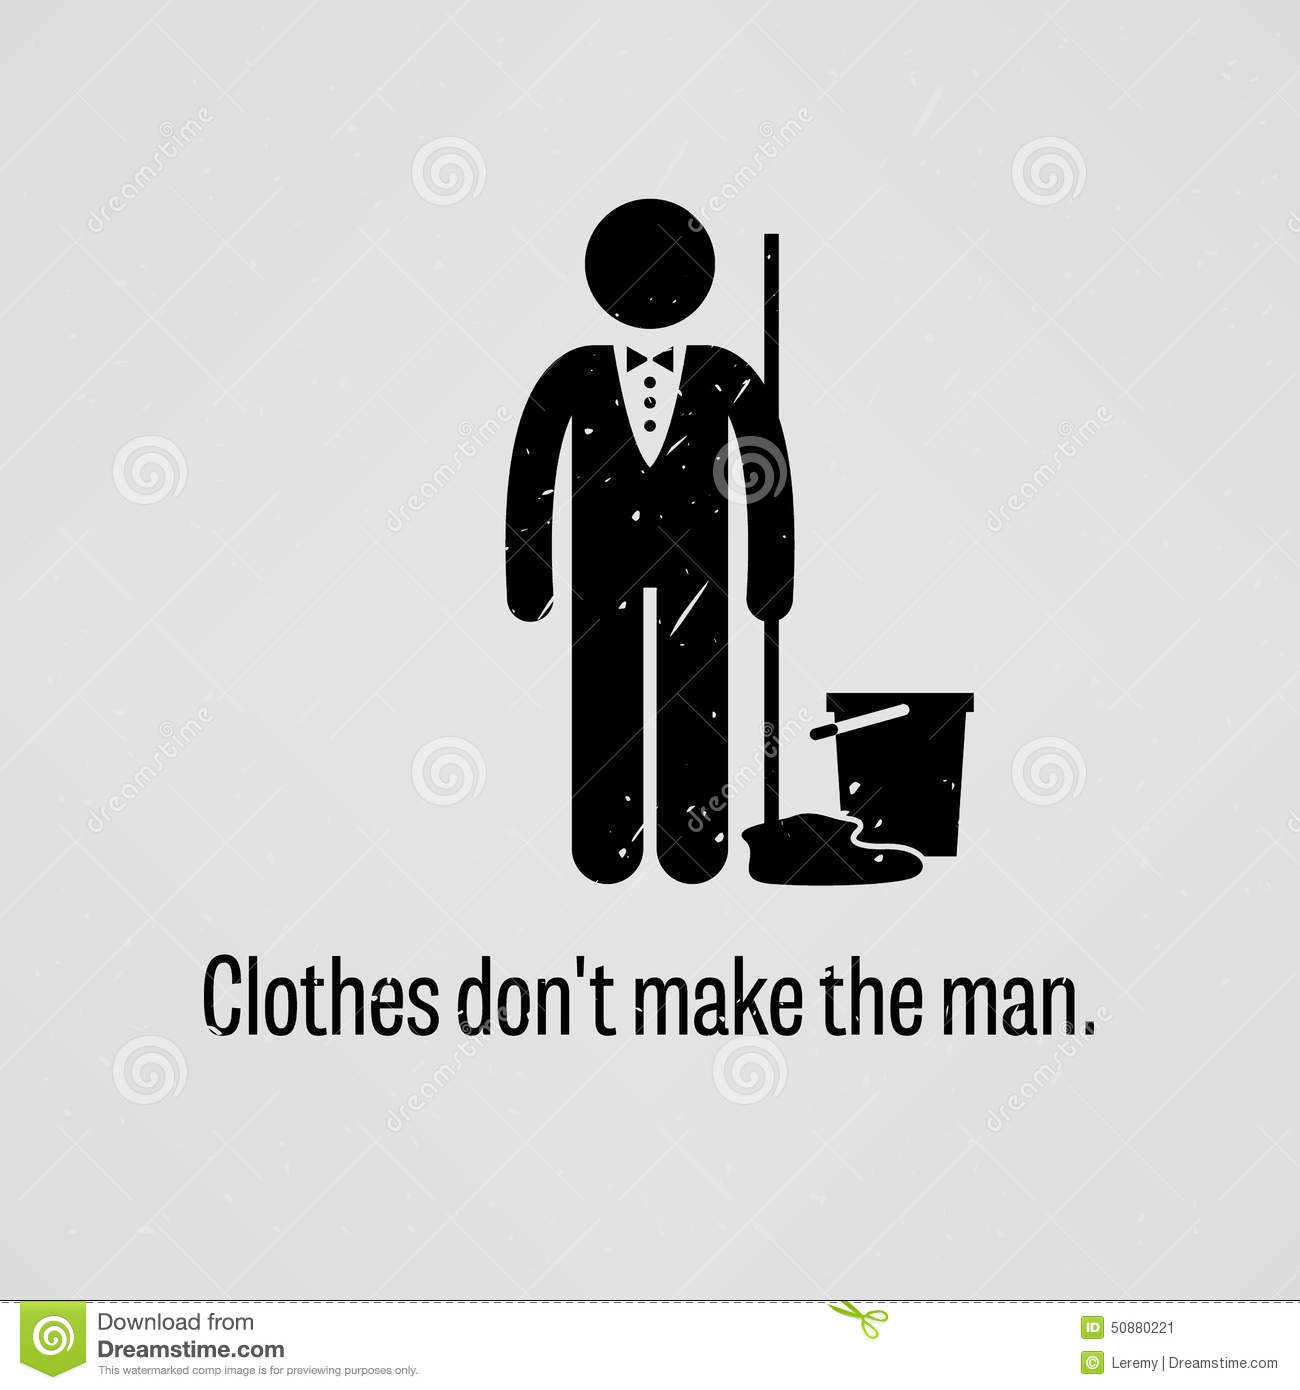 Do the Clothes Make the Man (or Woman)?